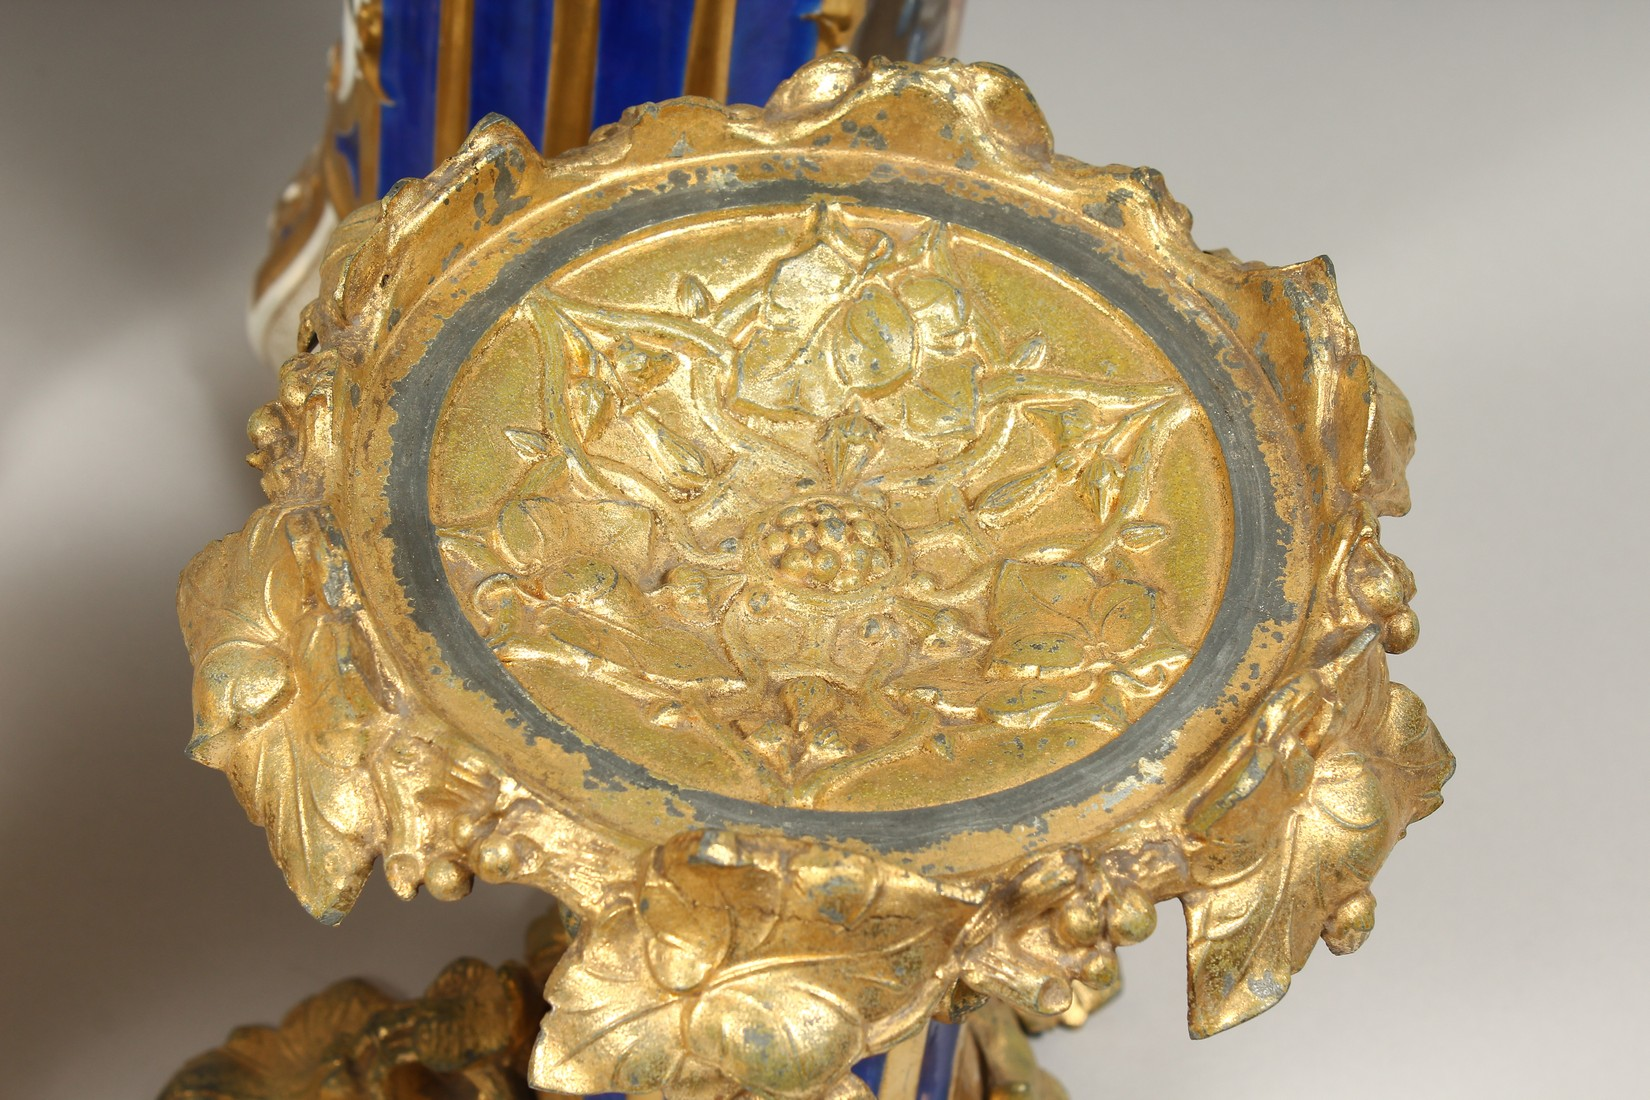 A SUPERB PAIR OF 19TH CENTURY FRENCH PORCELAIN AND GILT BRONZE LAMPS ON STANDS, painted with - Image 23 of 24